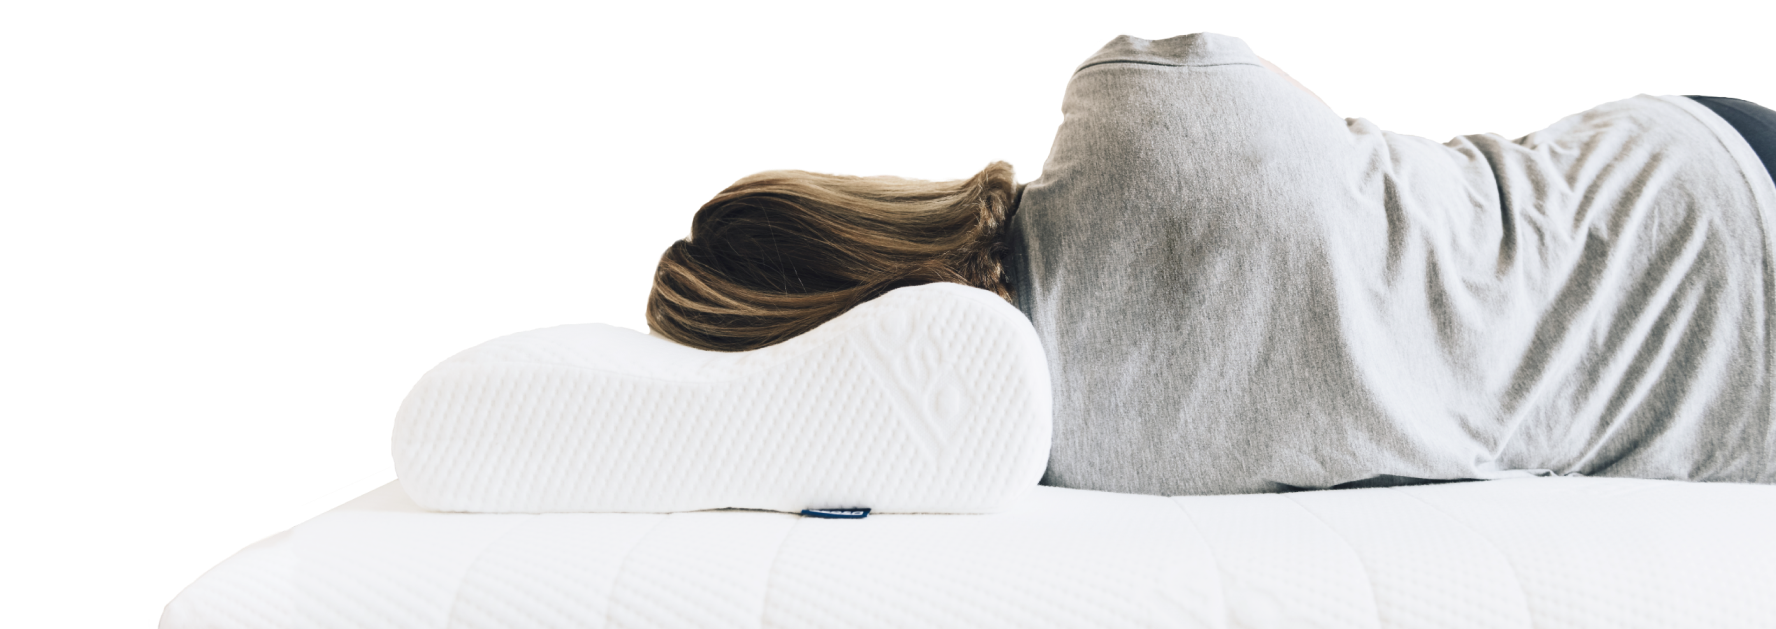 A woman sleeping on Ecosa pillow with perfectly aligned neck